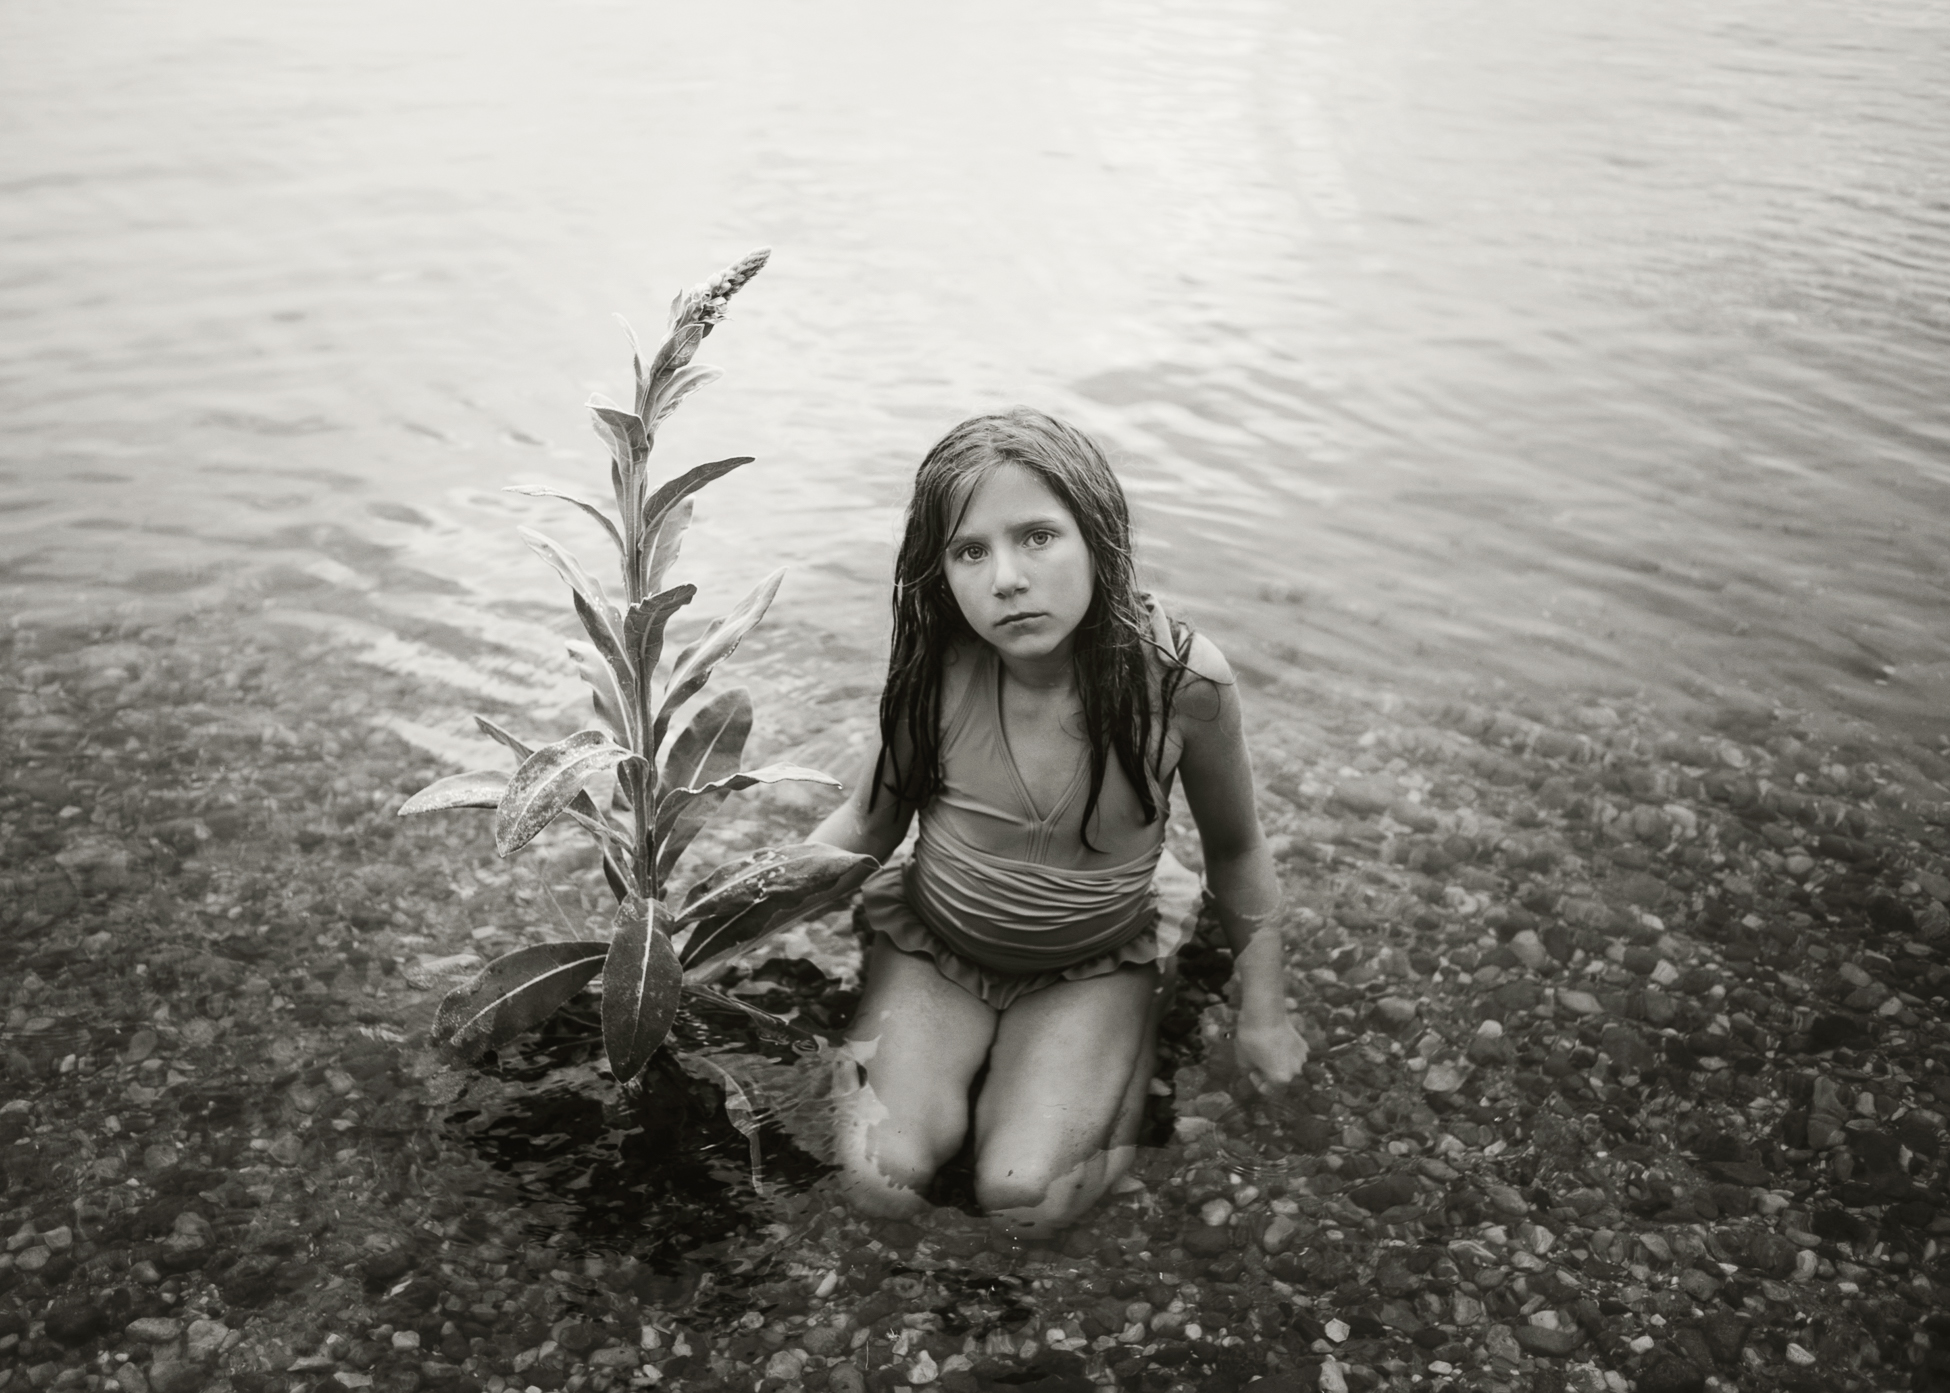 Clitherall, MN, 2013